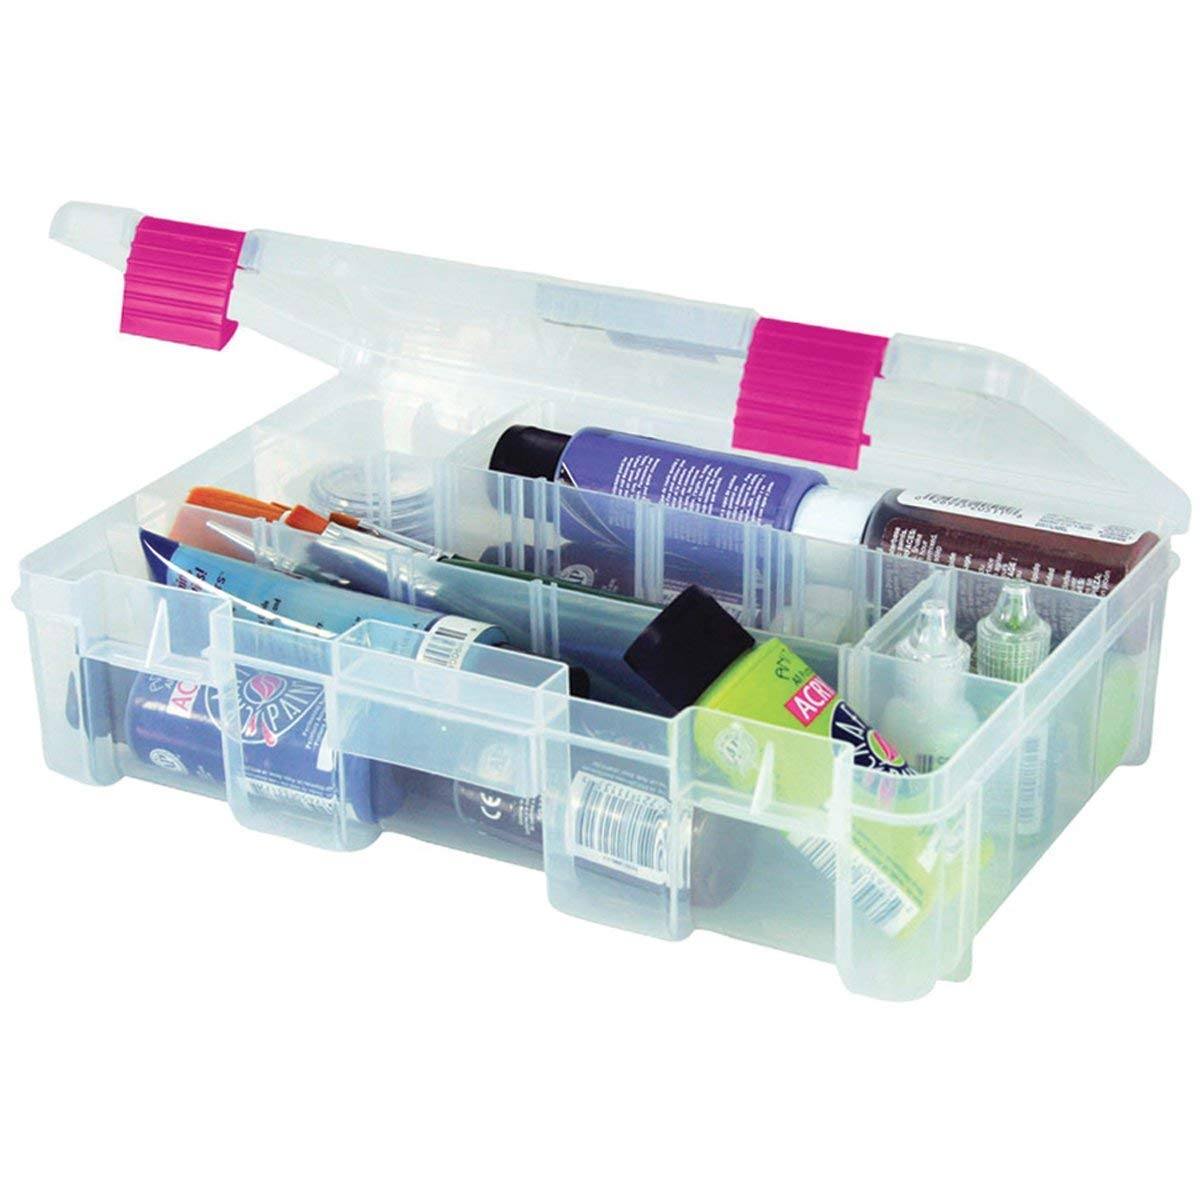 Creative Options 2-3630-82 Pro-Latch Deep Utility Organizer with 4 to 9 Adjustable Compartments, Medium Plano Molding Company